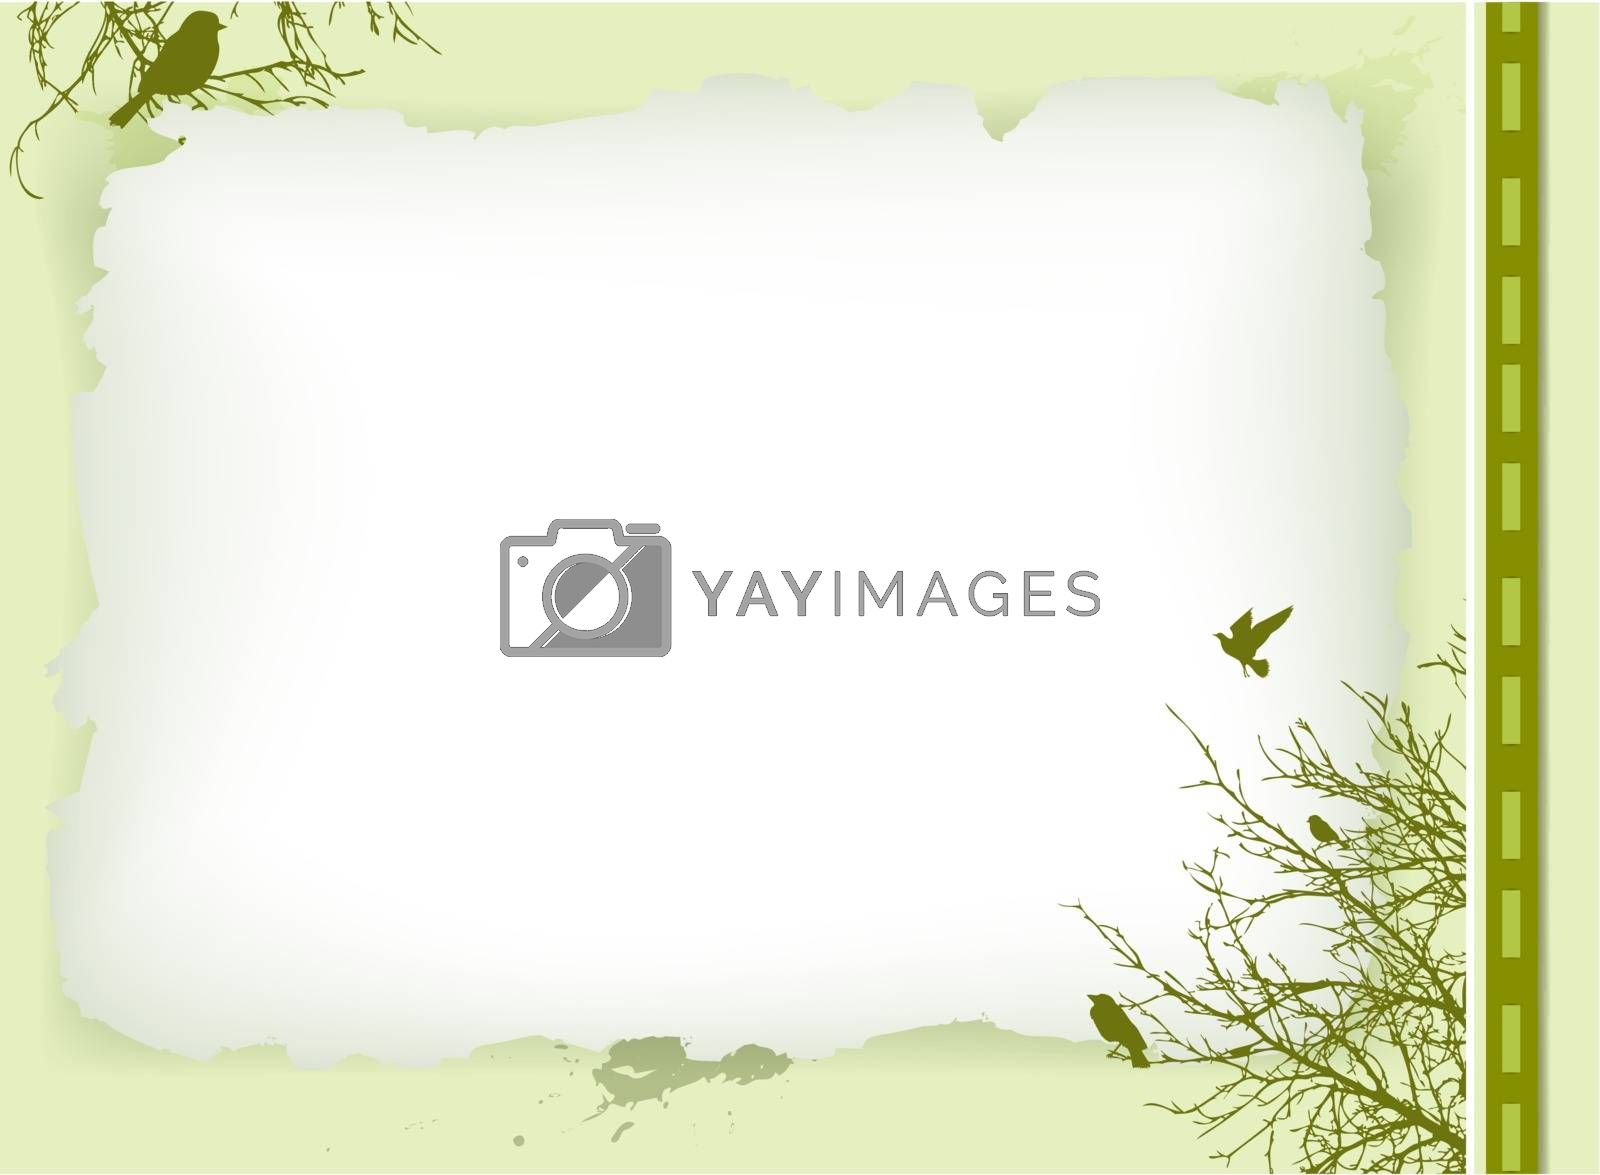 decorative vintage invitation card with nature elements and copyspace